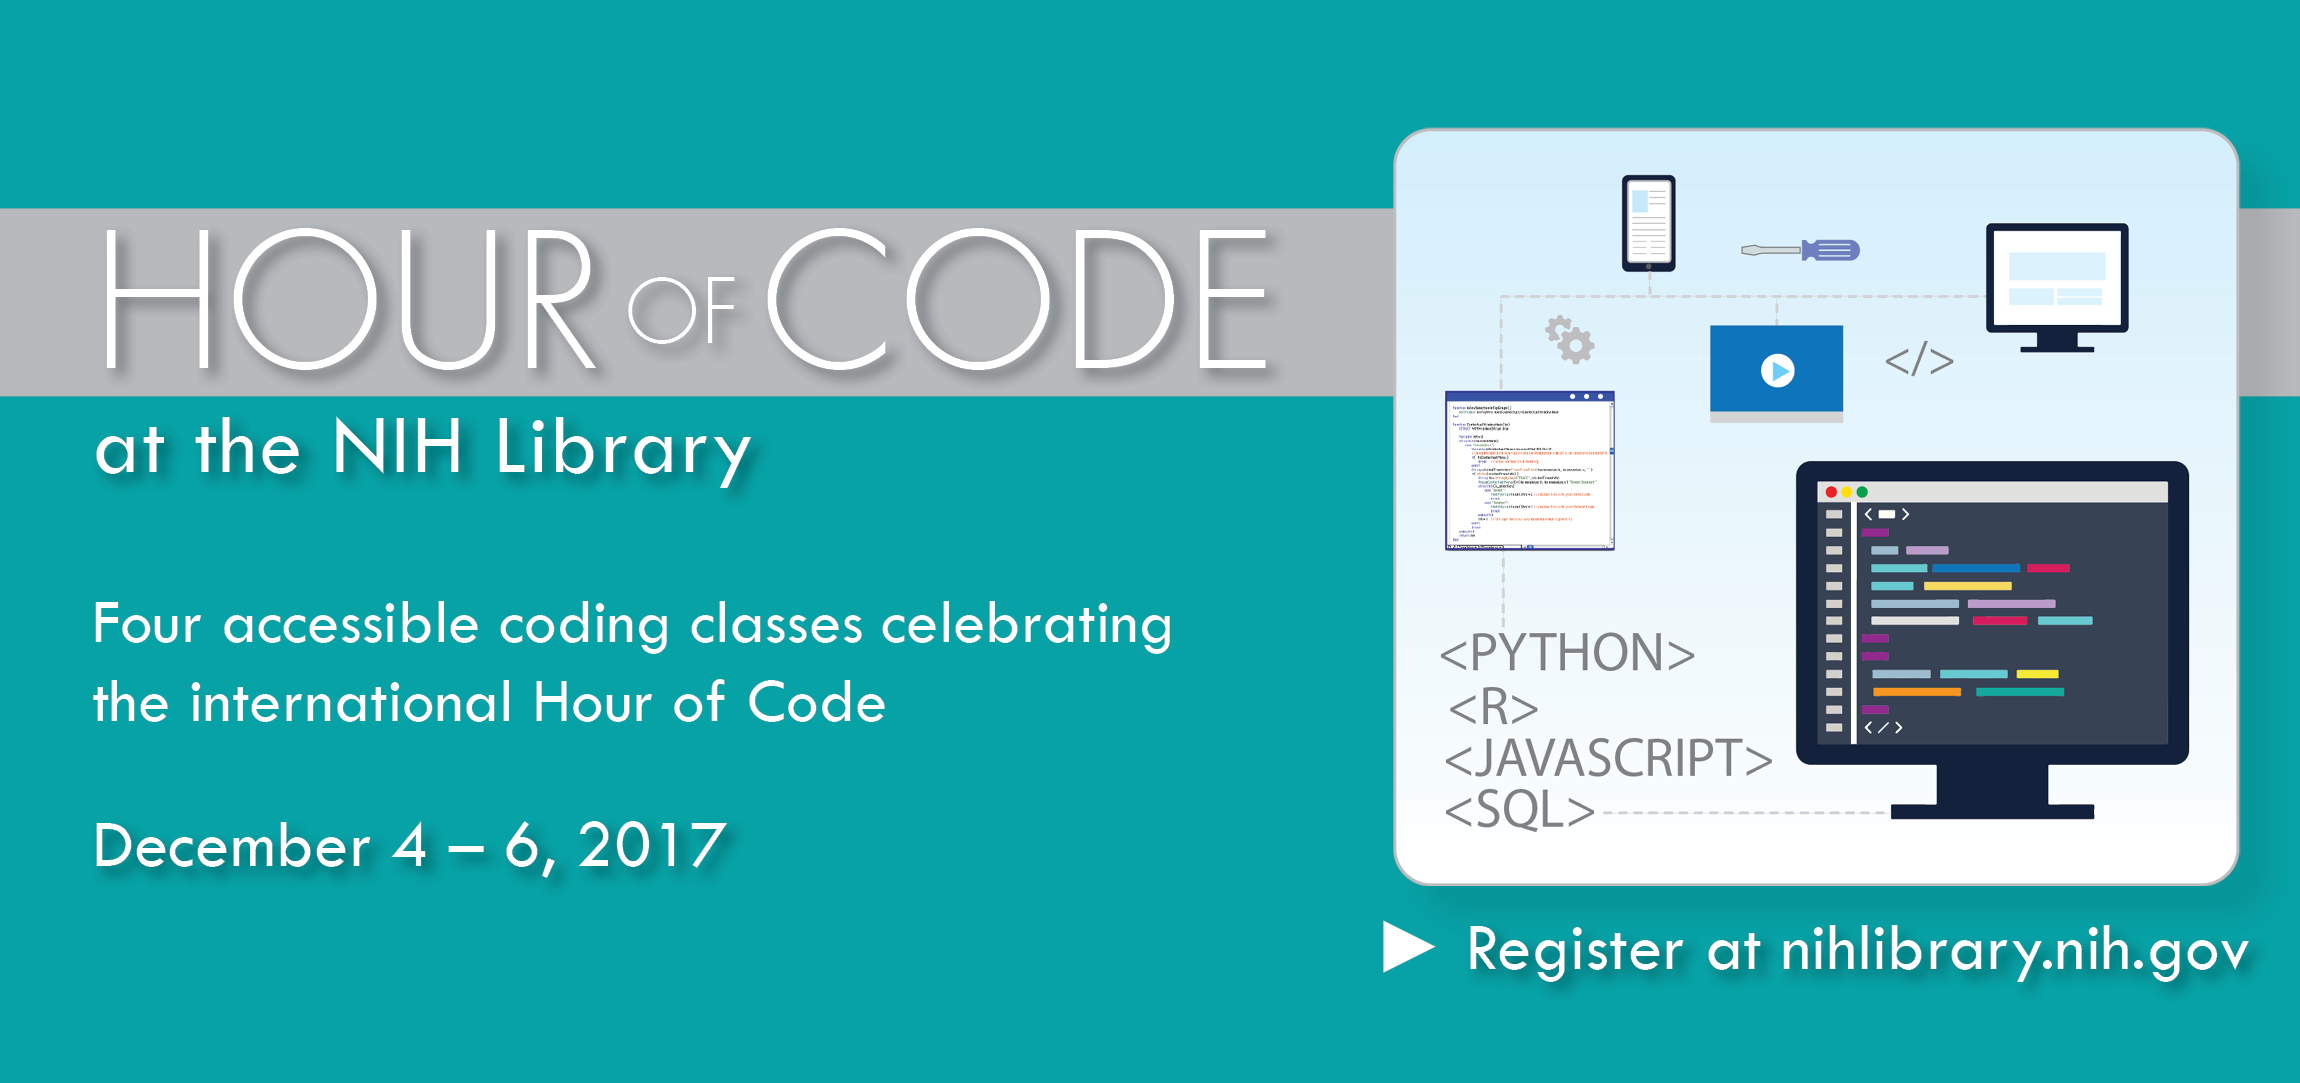 Hour of Code Classes at the NIH Library | NIH Library